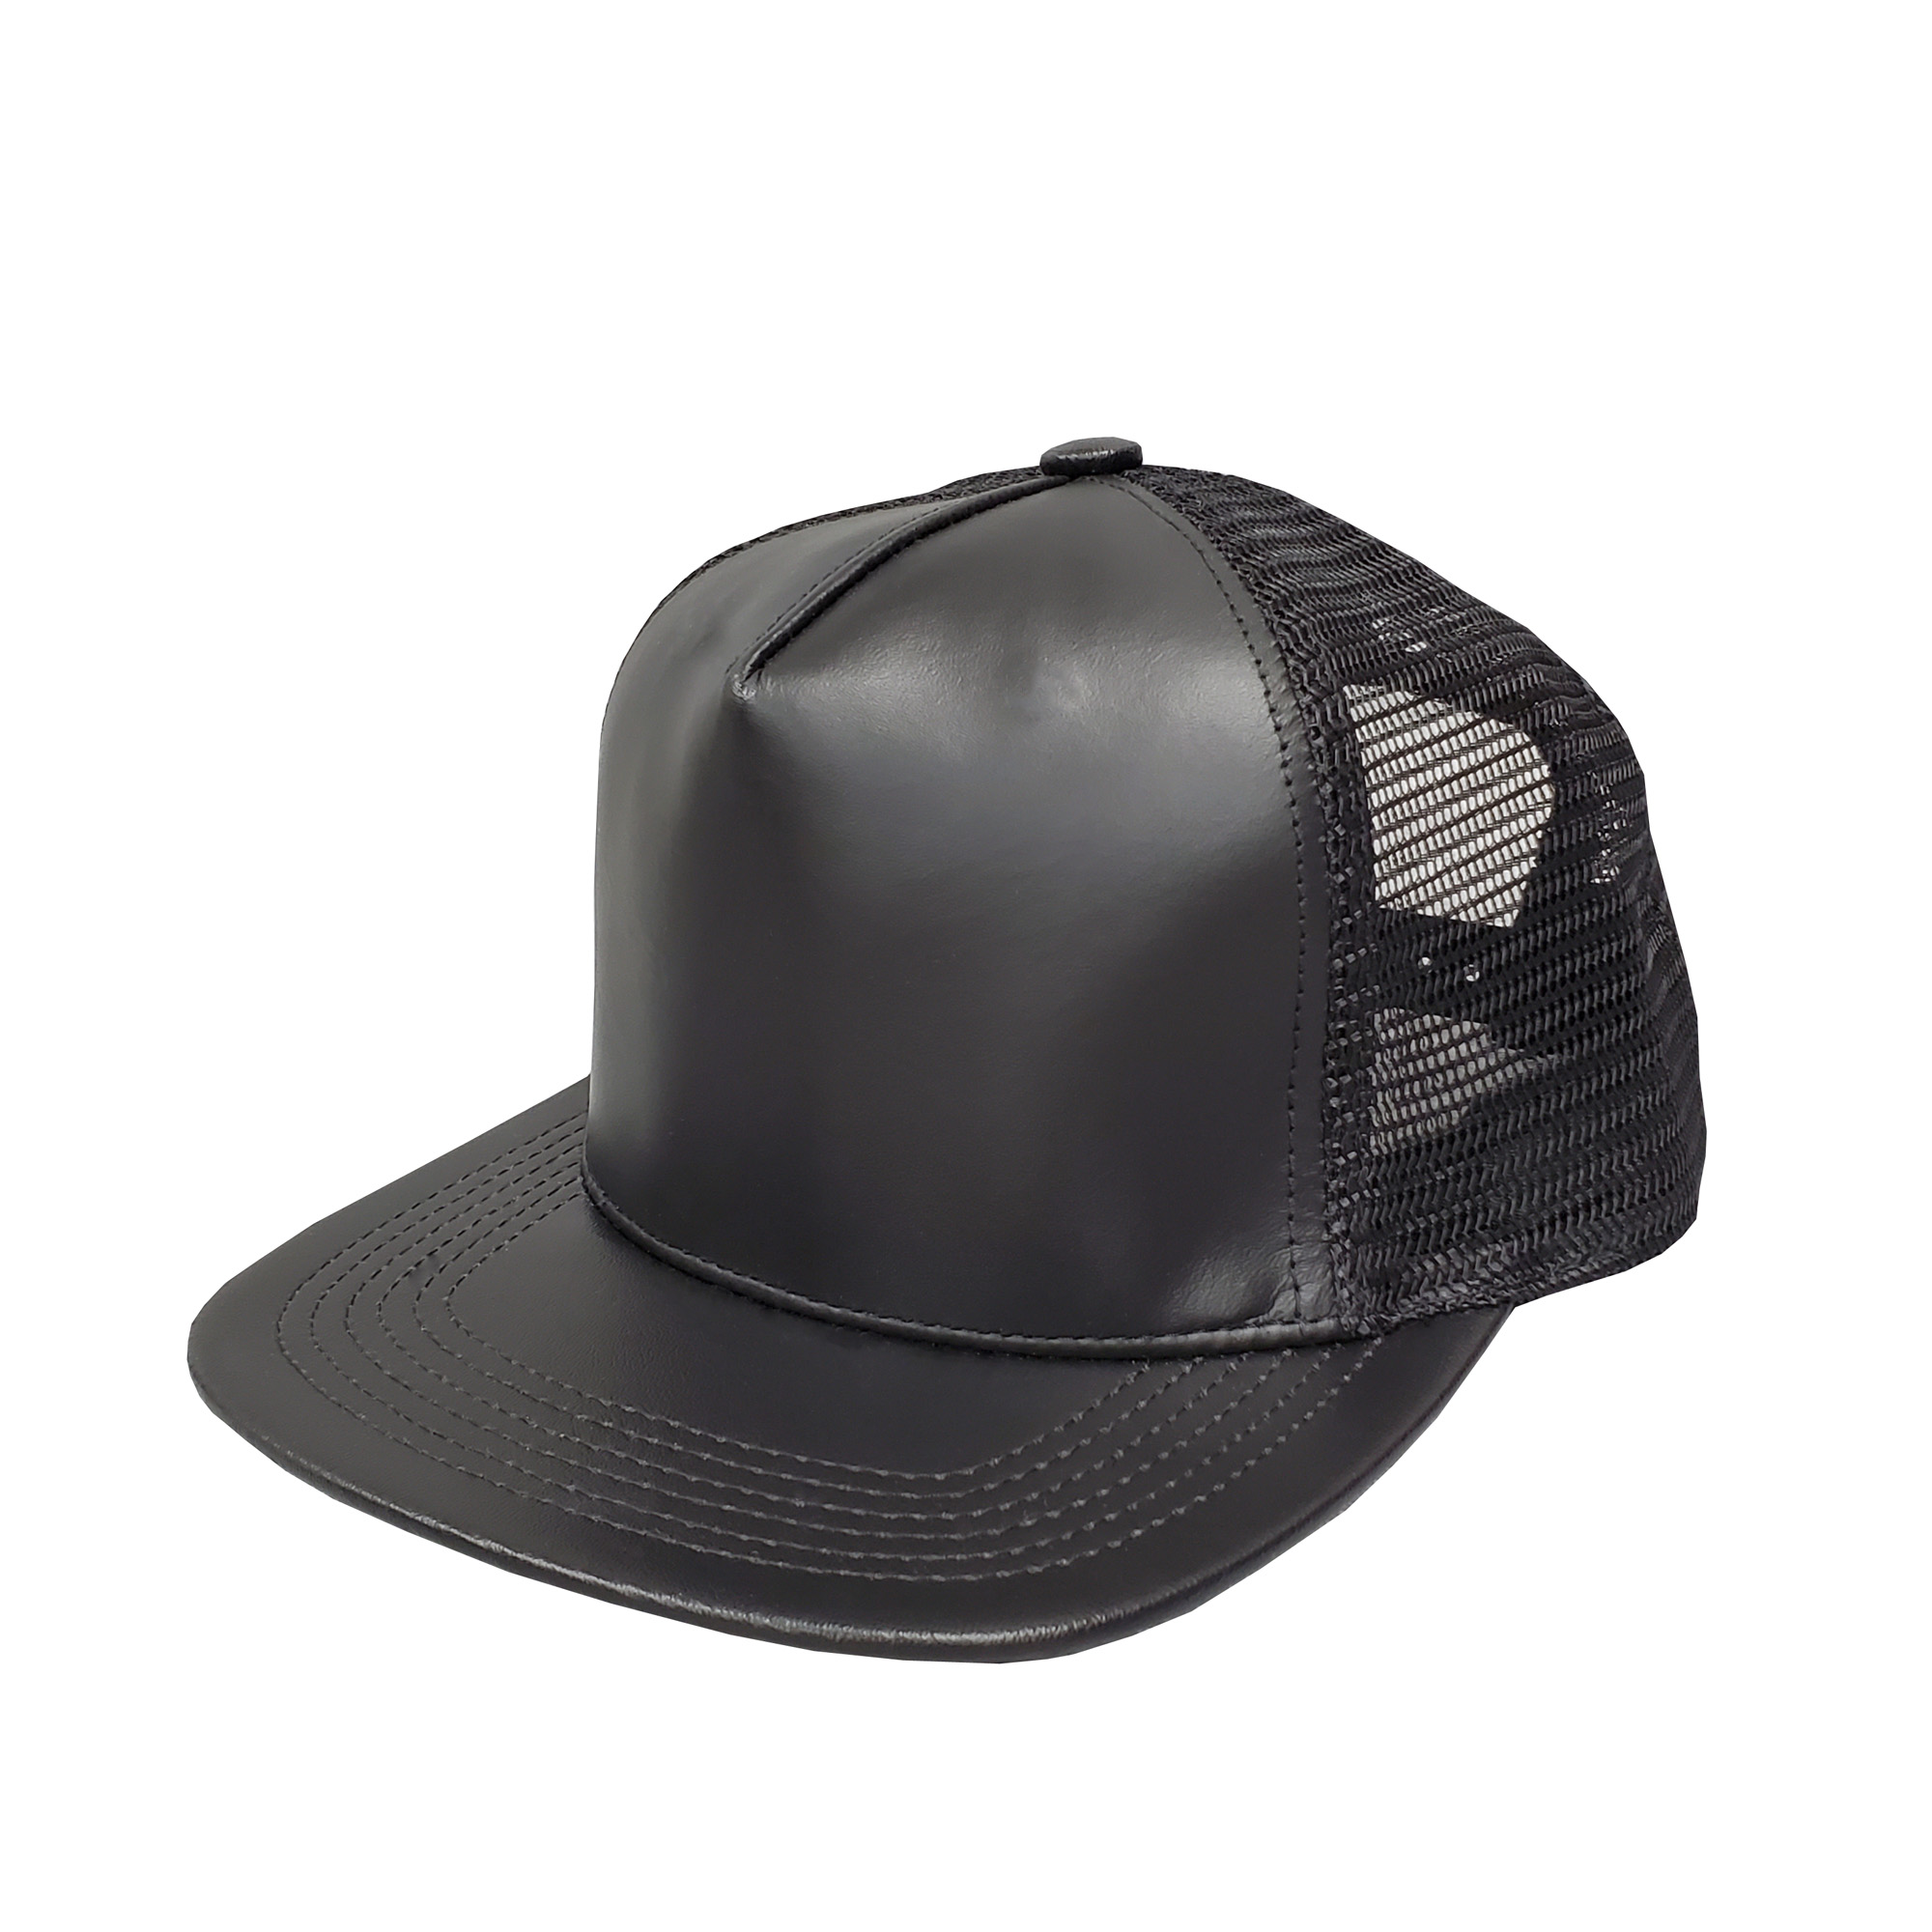 Black Leather High-Profile Mesh Cap